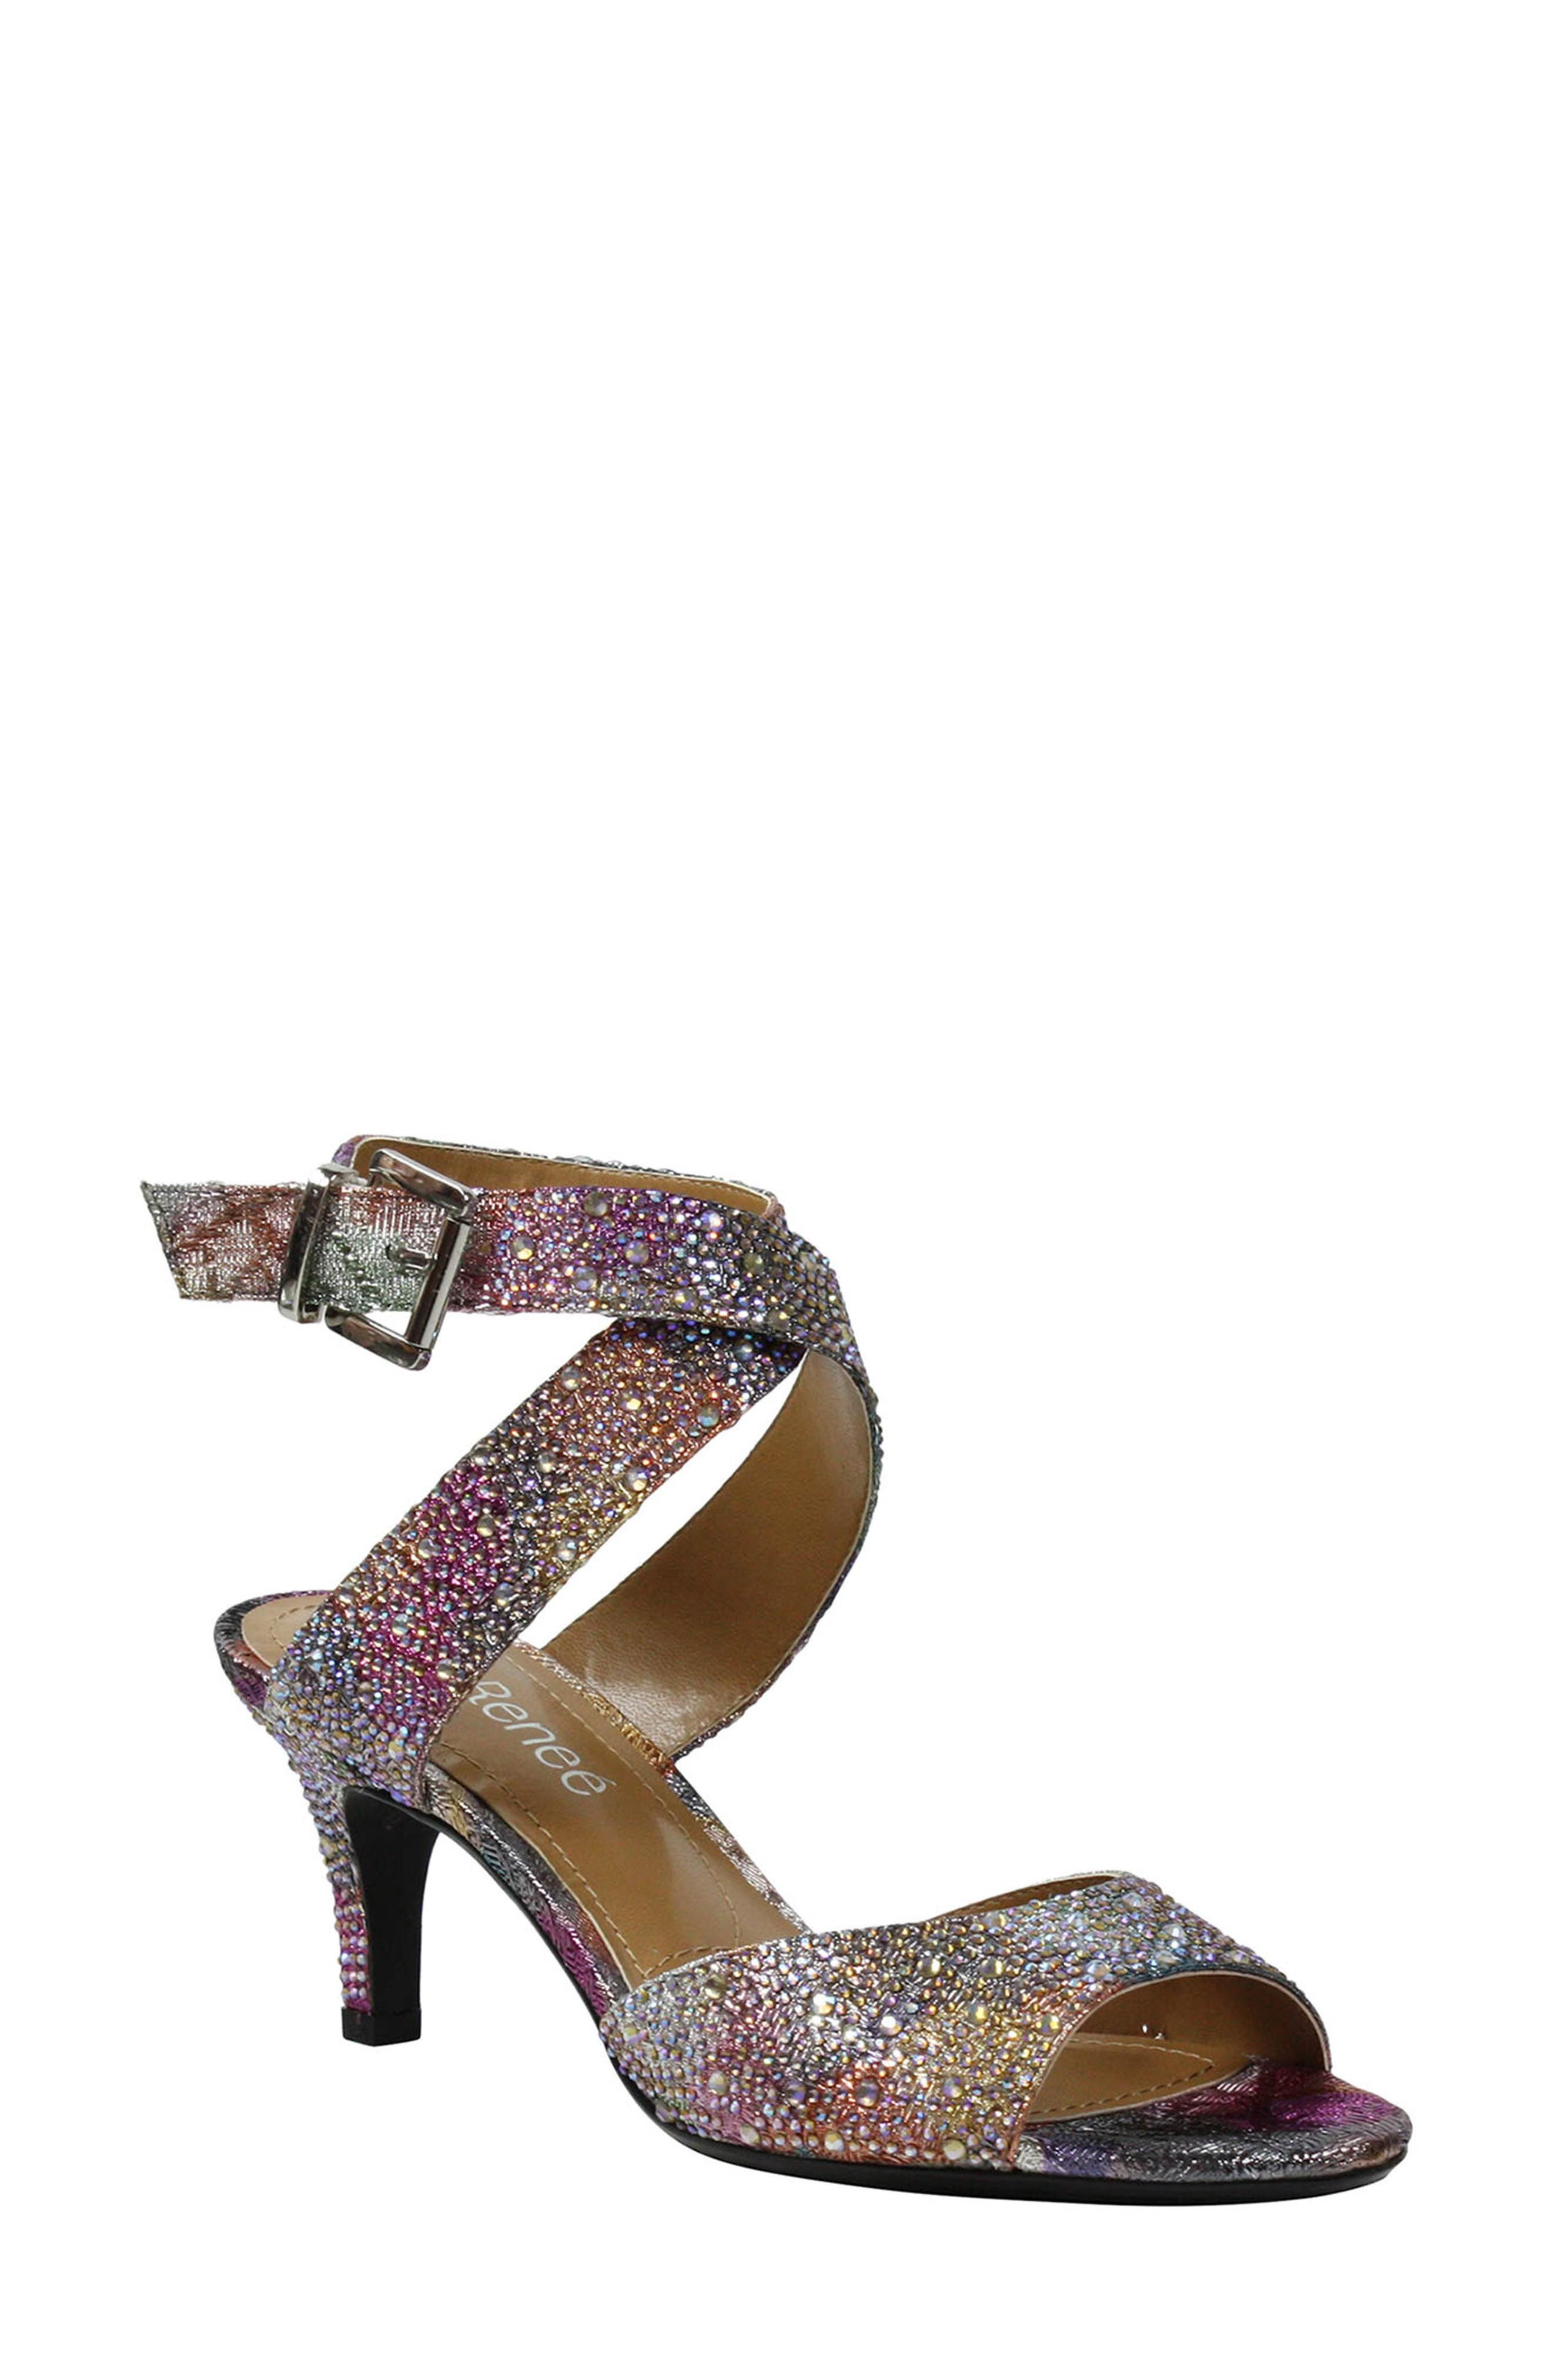 'Soncino' Ankle Strap Sandal,                             Main thumbnail 1, color,                             SILVER/ PASTEL FABRIC